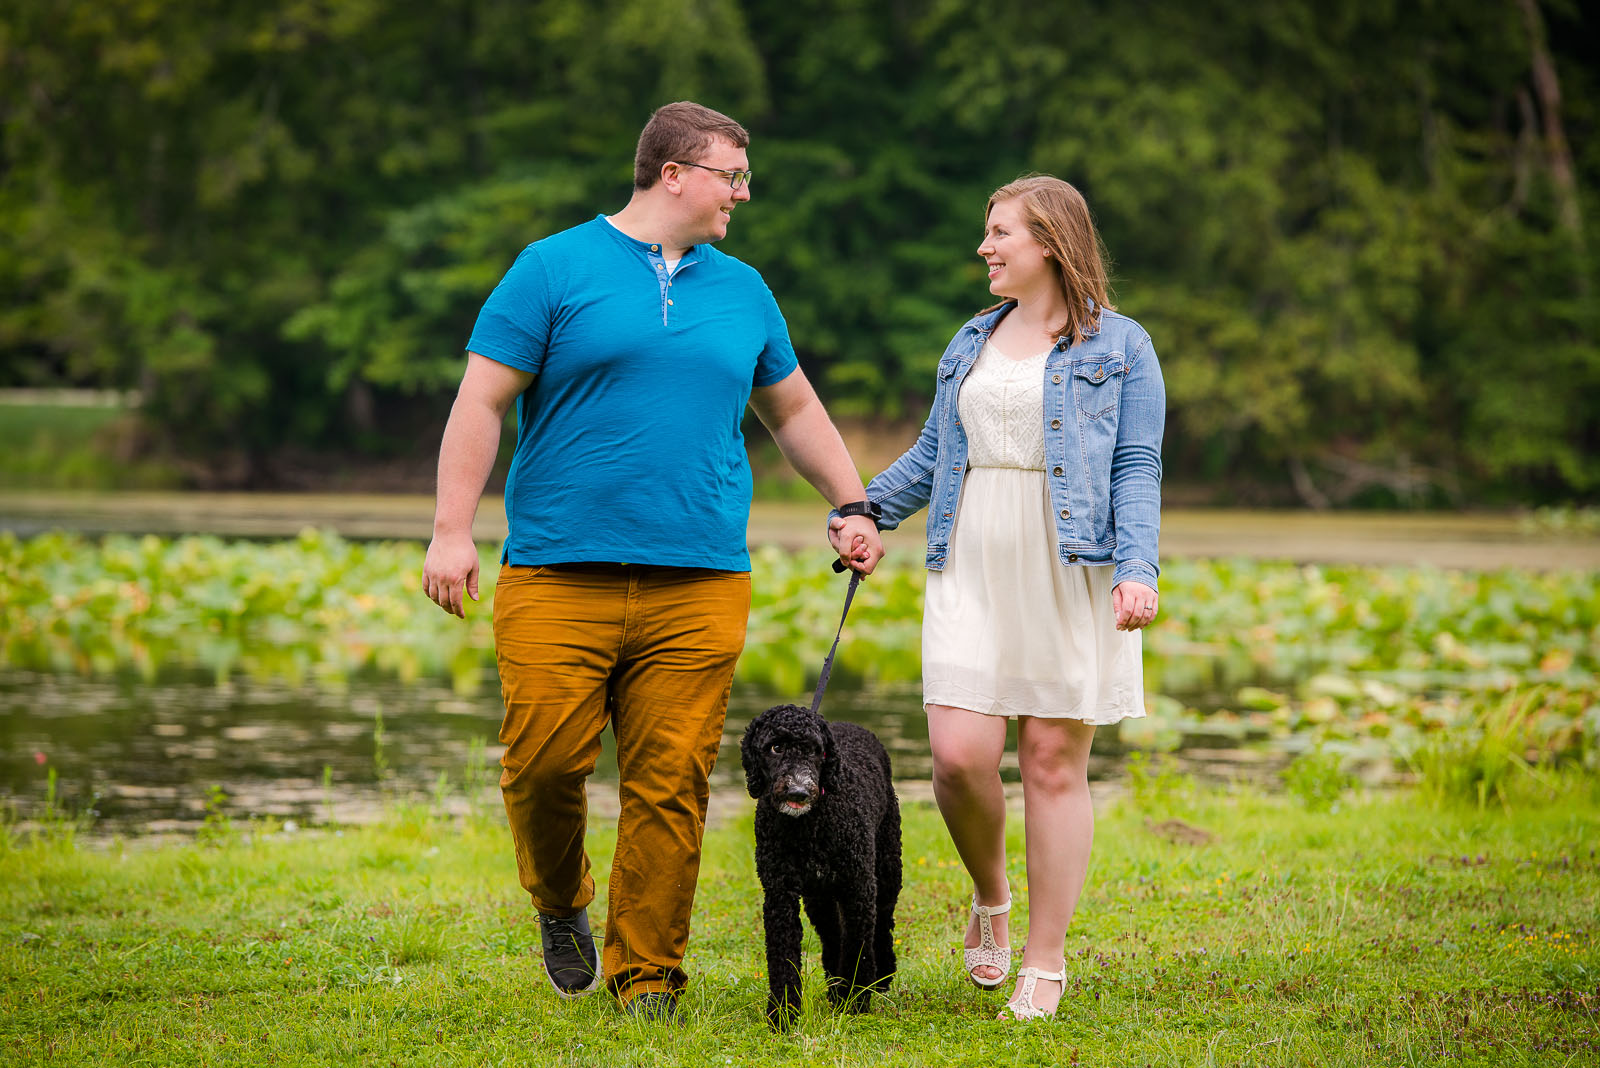 Eric_and_Christy_Photography_Blog_2017_Best_Engagement-3